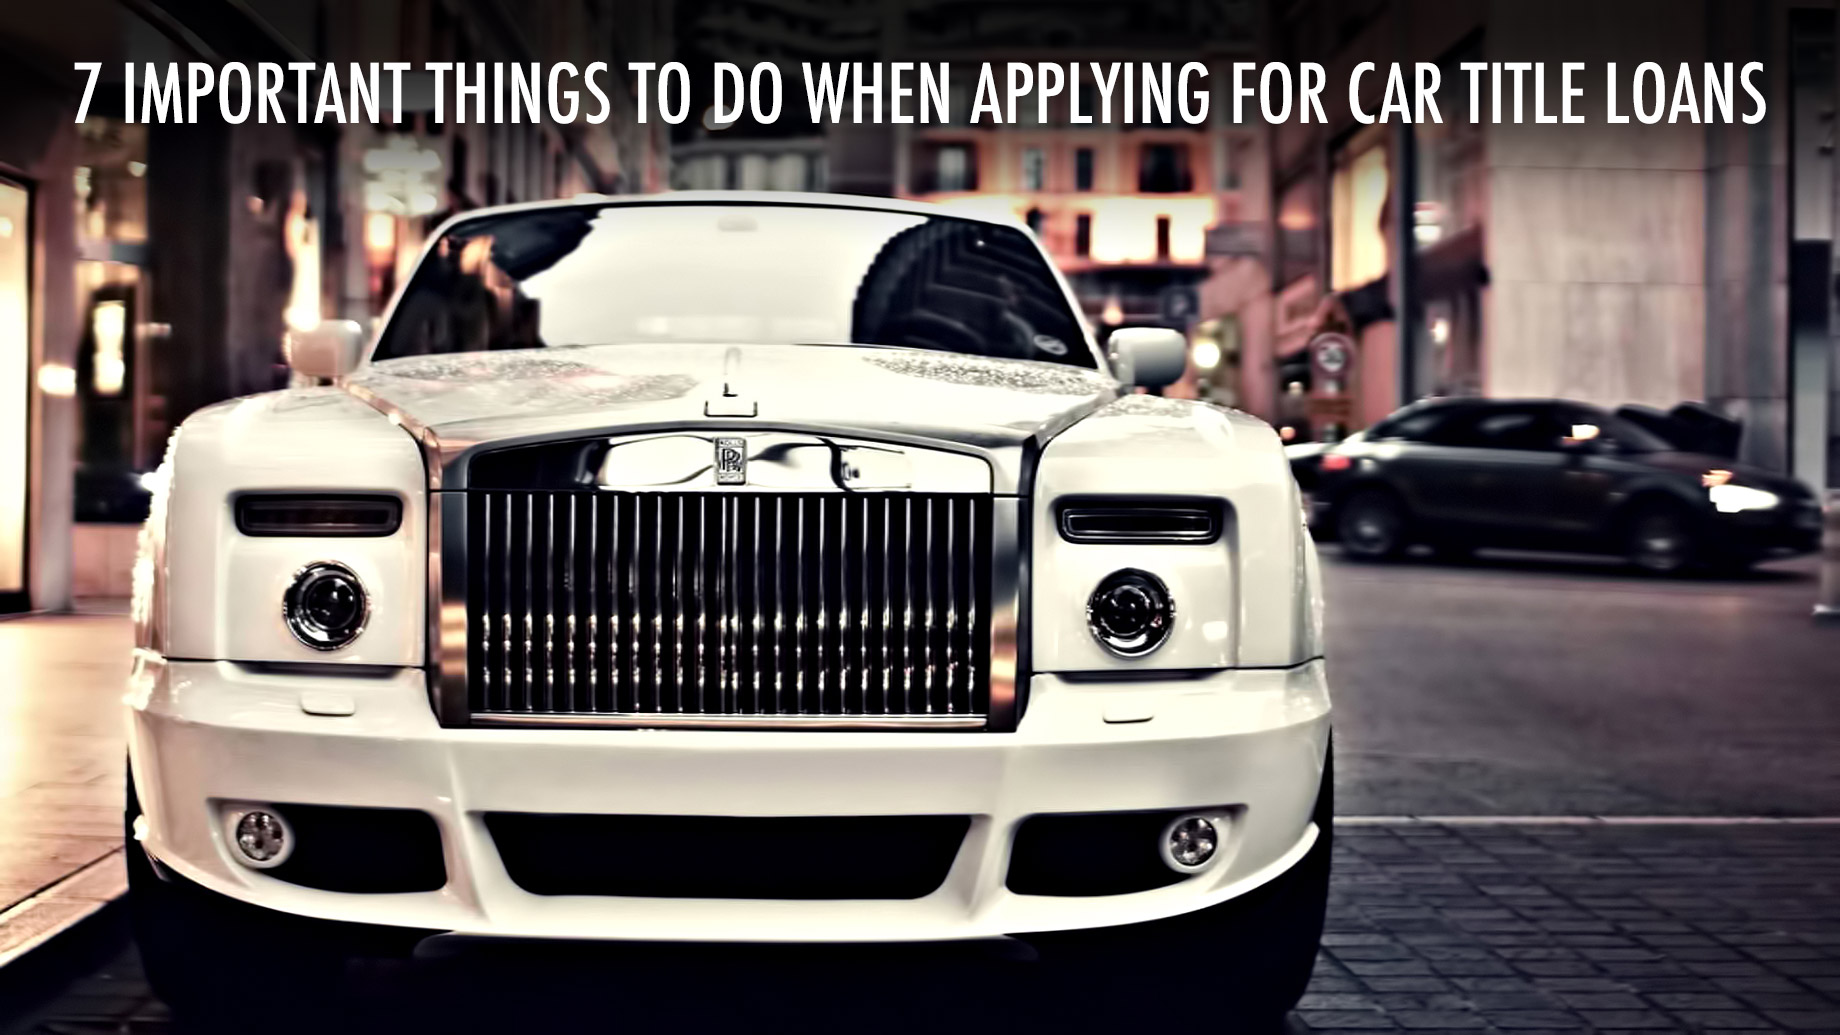 Luxury Financing - 7 Important Things To Do When Applying for Car Title Loans